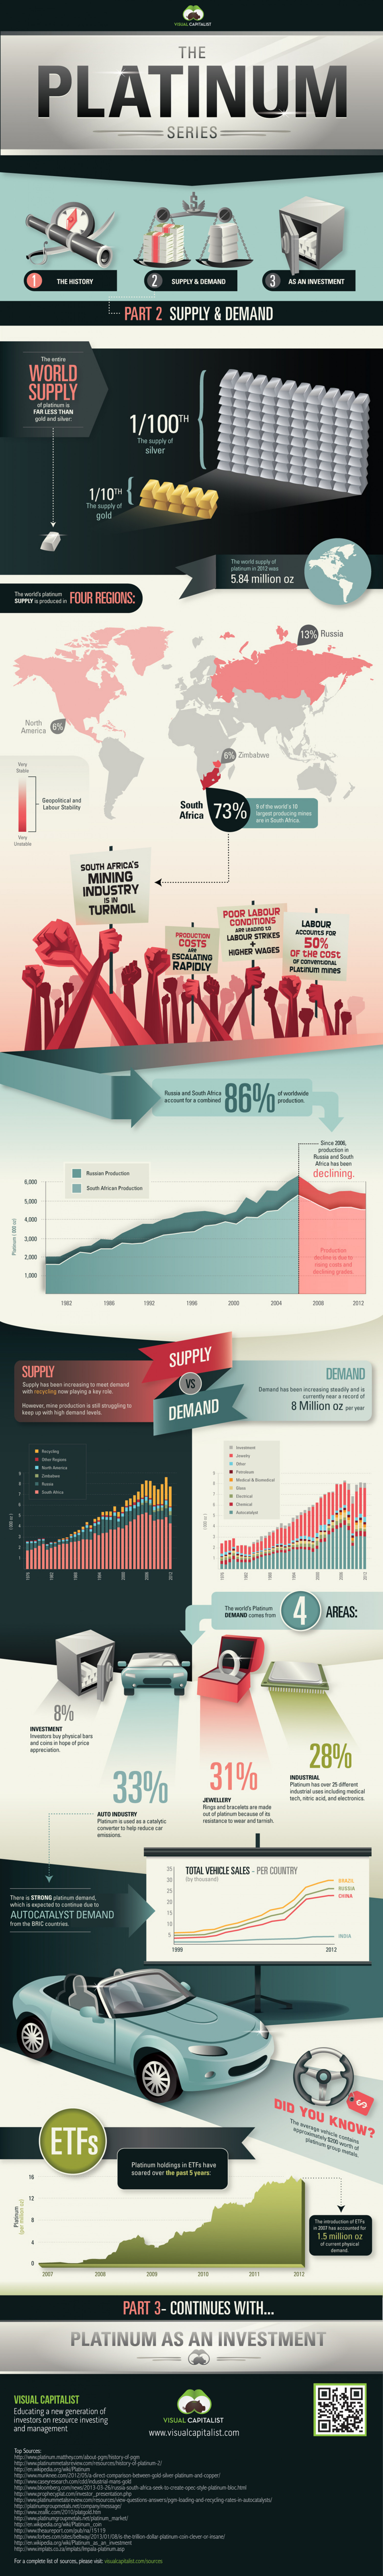 The Platinum Series: Supply and Demand Infographic